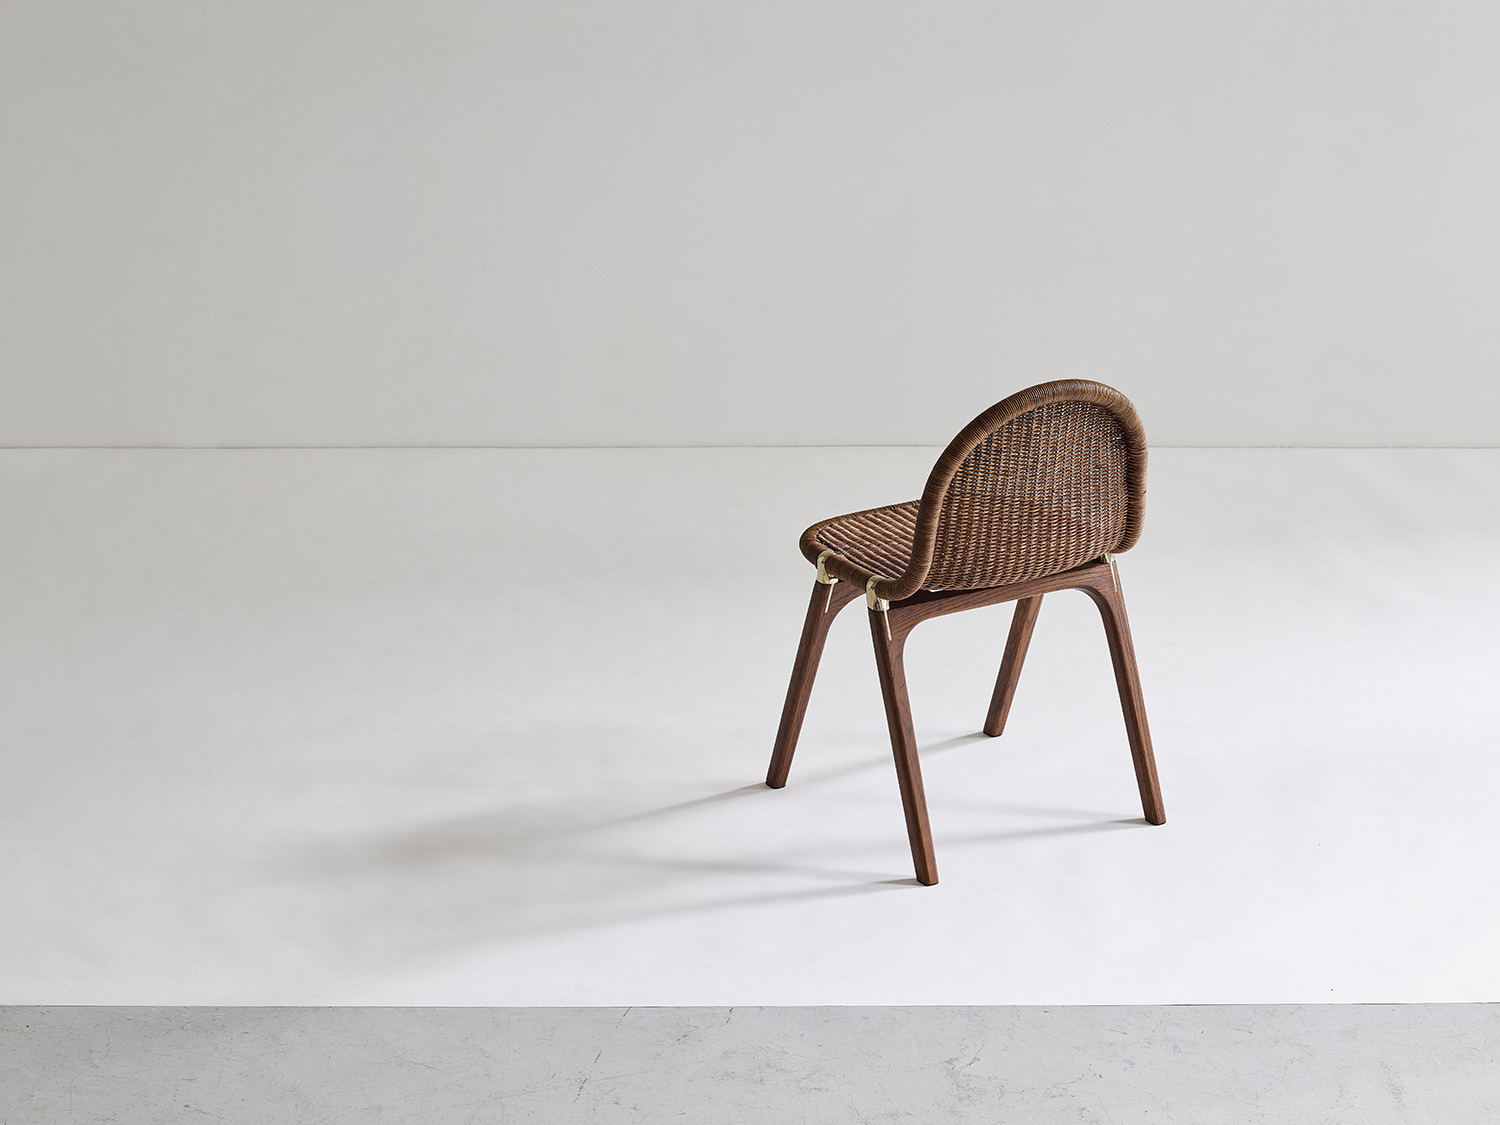 Thong lor chair back cropped sm 2.jpg